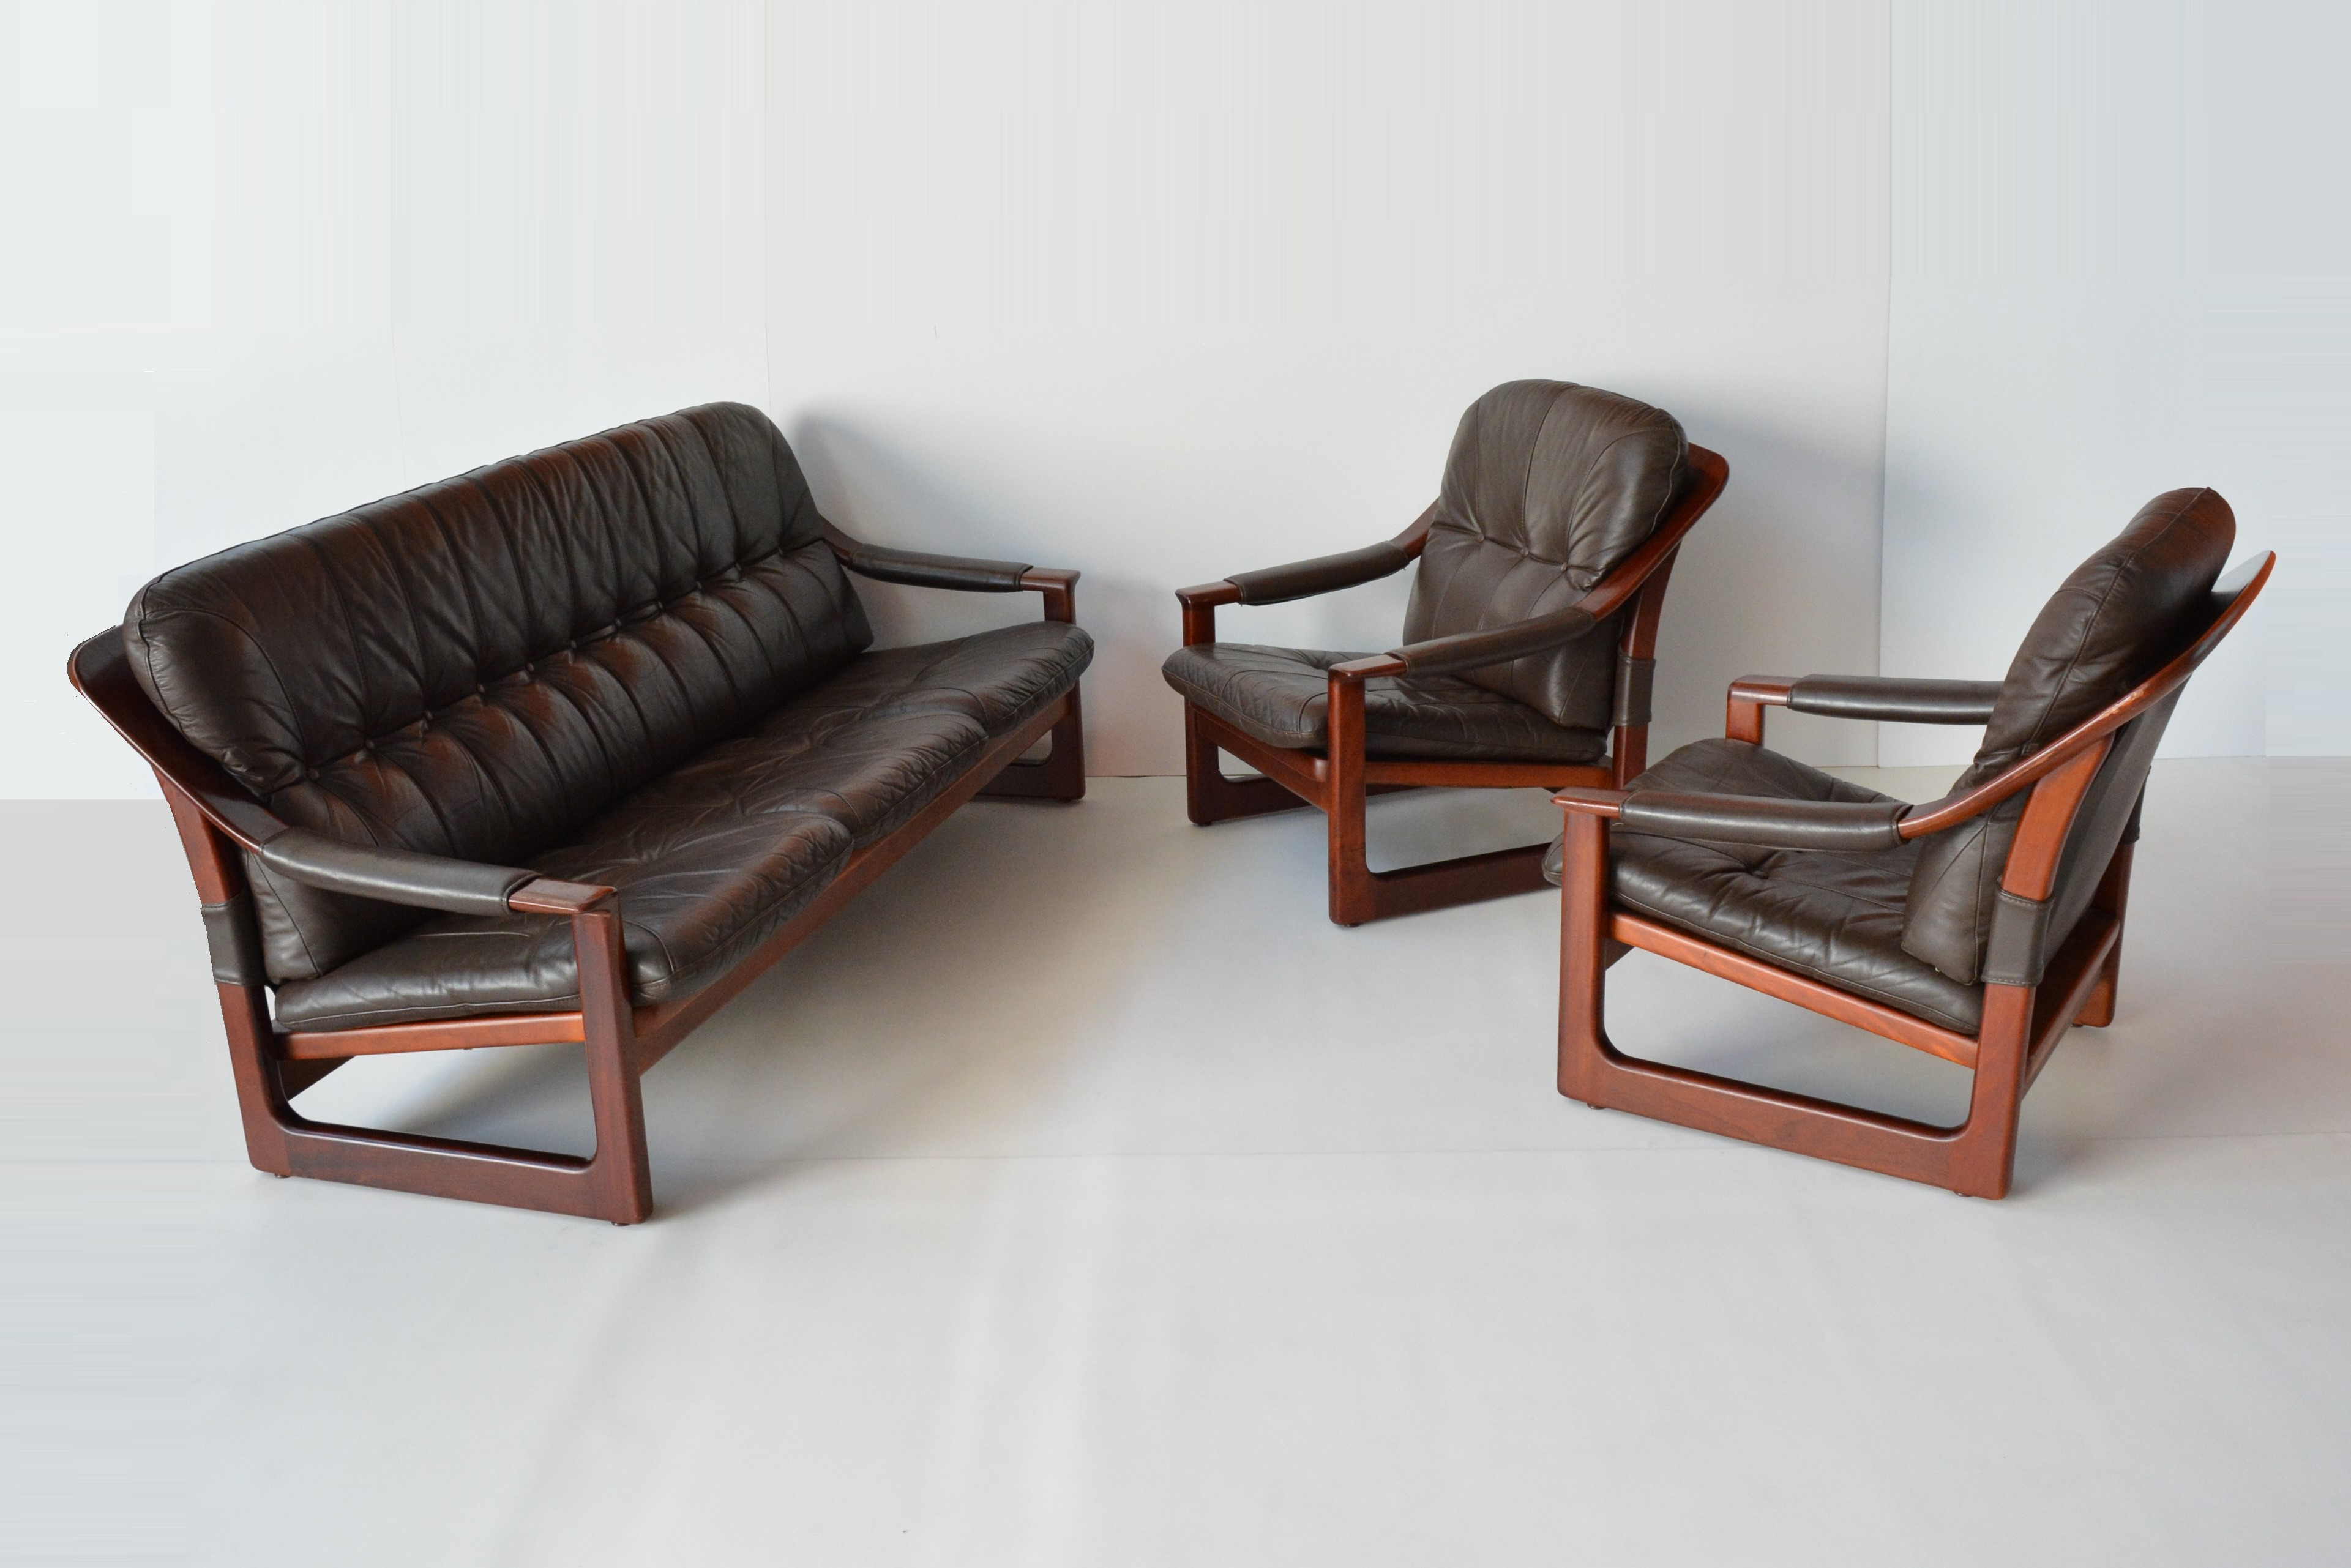 Pair Tessa Leather Sling Lounge Chairs Retro Leather Chairs Vintage Danish Chairs Invisedge